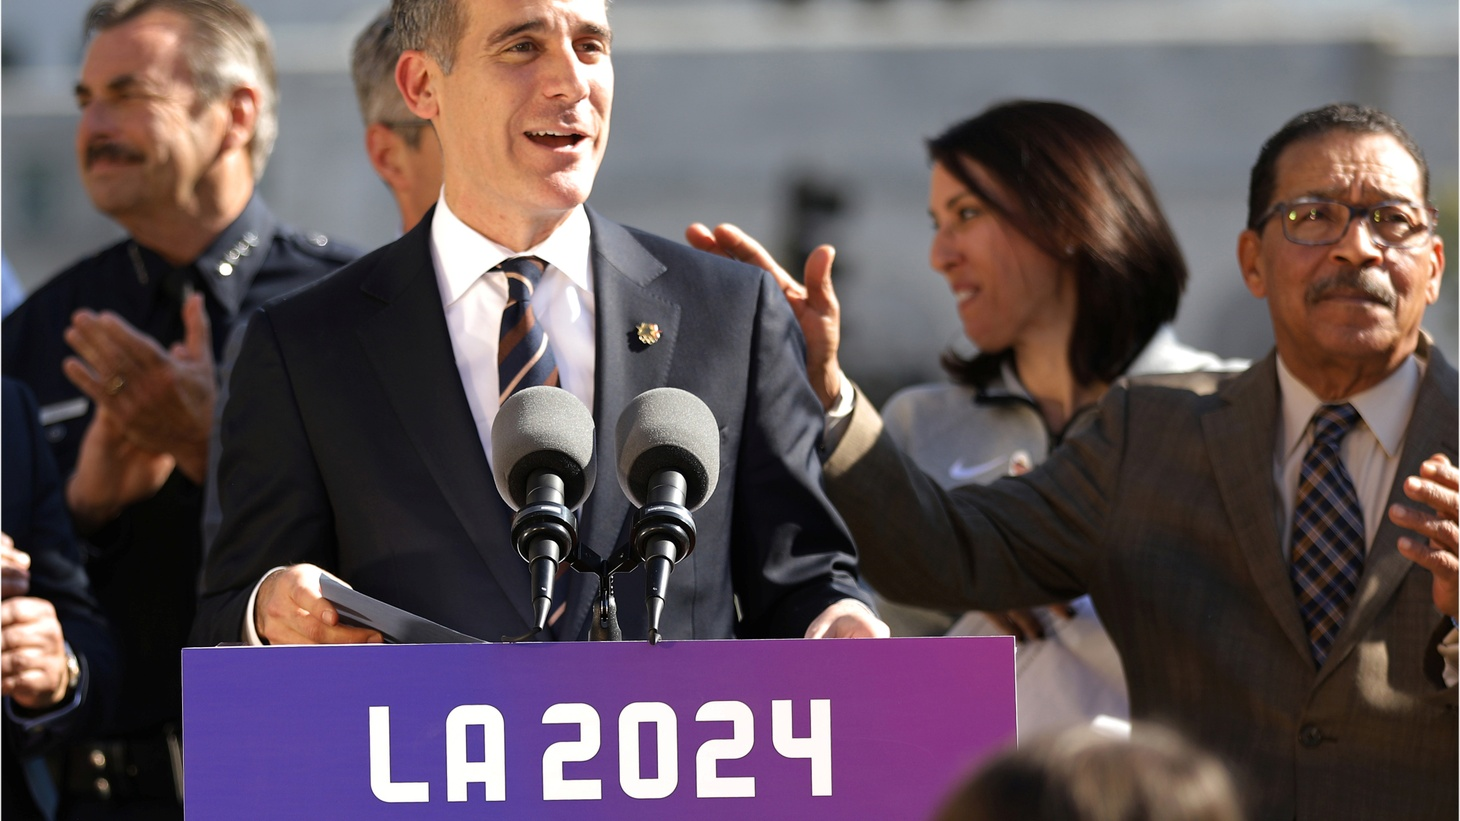 LA Mayor Garcetti explains his plans to create more housing and help get the homeless out of tent encampments. Also, is he going to run for governor?